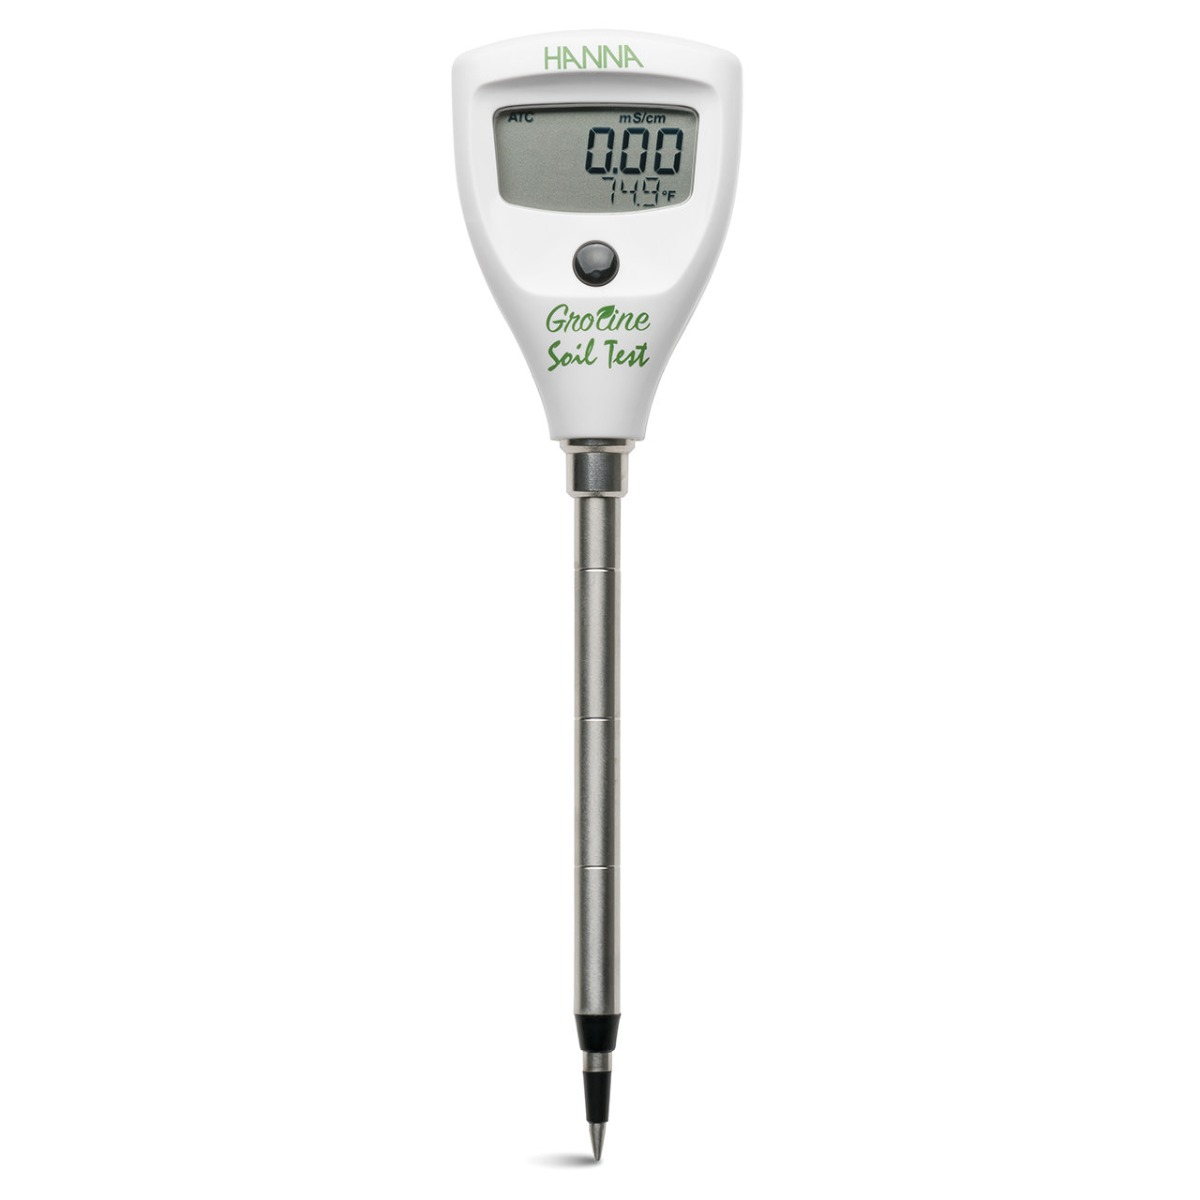 Soil Test™ Direct Soil EC Tester - HI98331